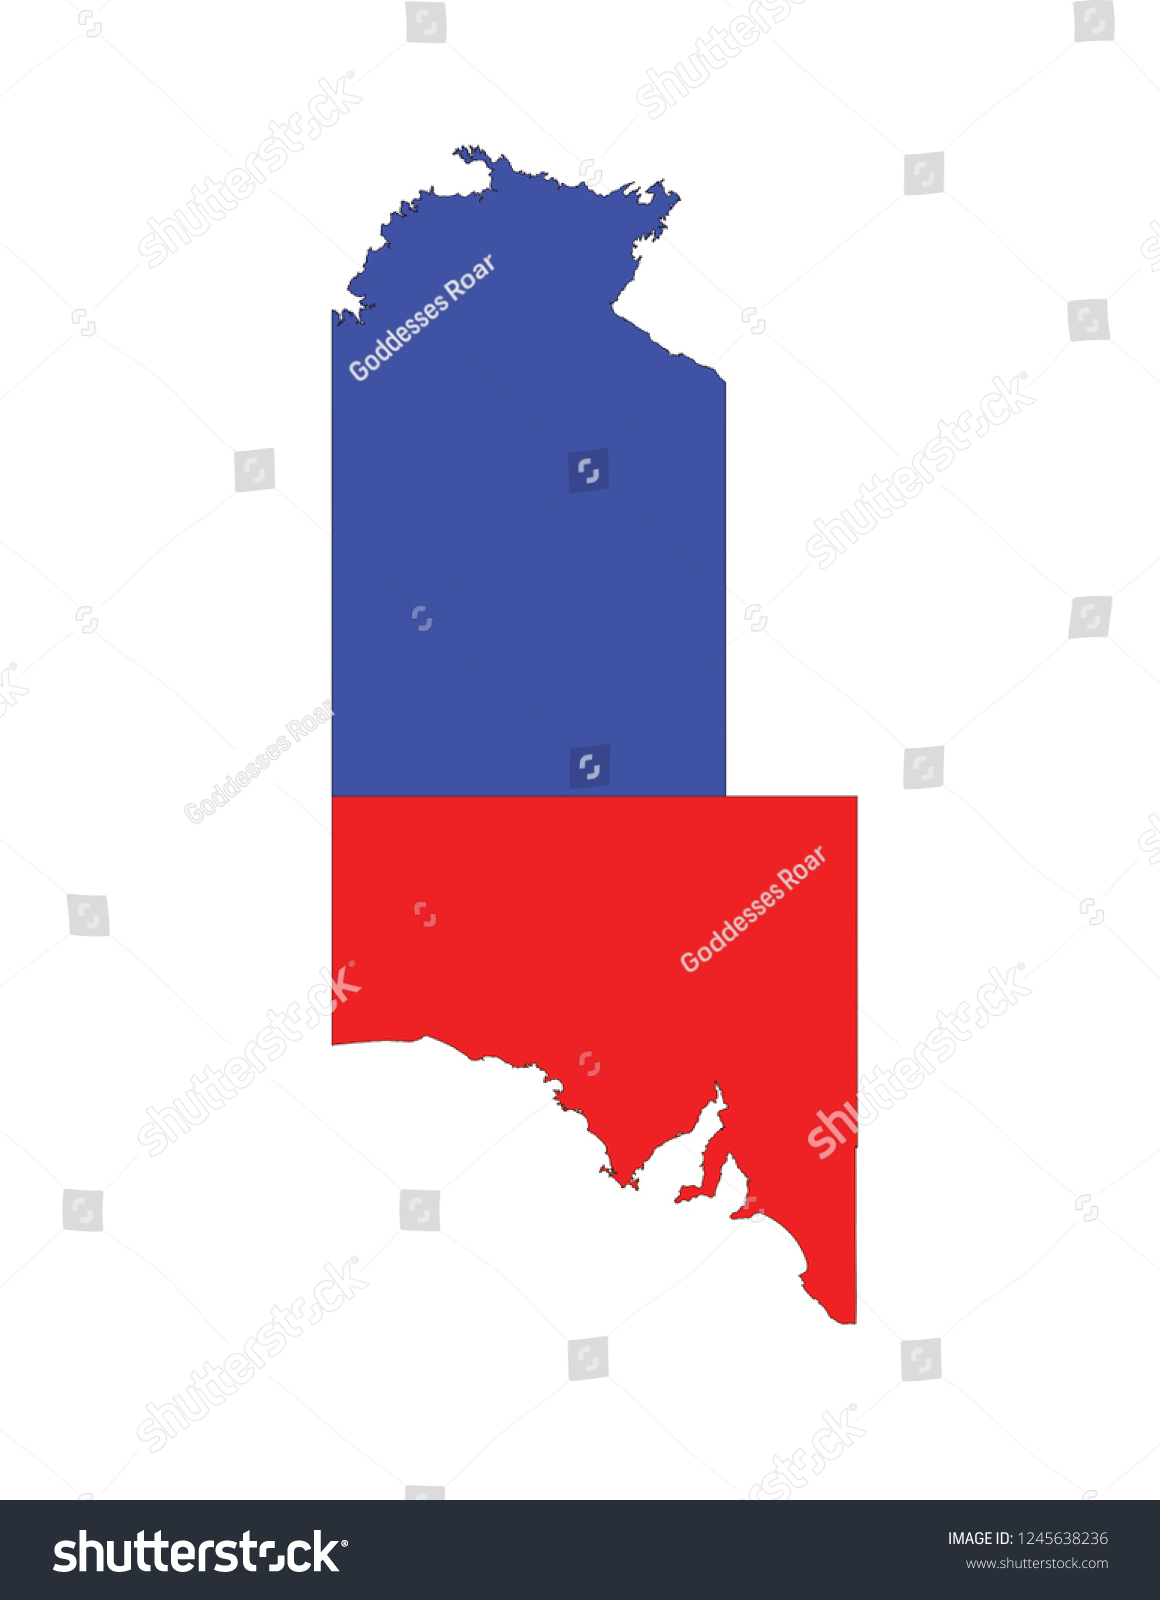 Map Of South Australia And Northern Territory.Central Australia Northern Territory South Australia Stock Vector